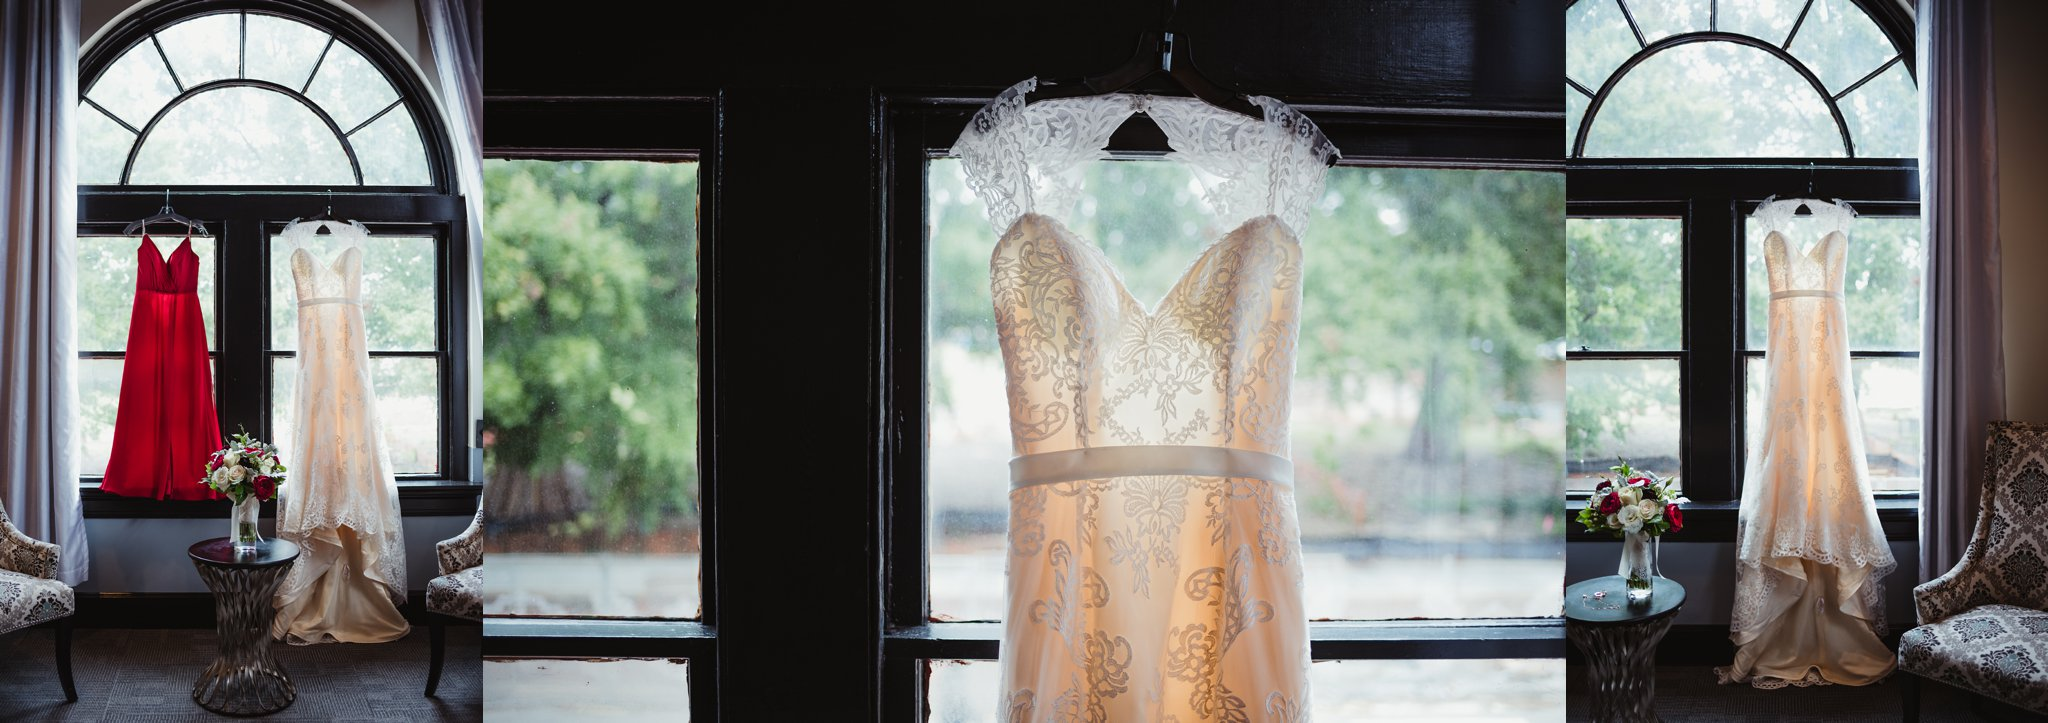 Wedding details include the lace dress, gorgeous flowers, and red bridesmaid dresses from the wedding in downtown Raleigh, photos by Rose Trail Images.